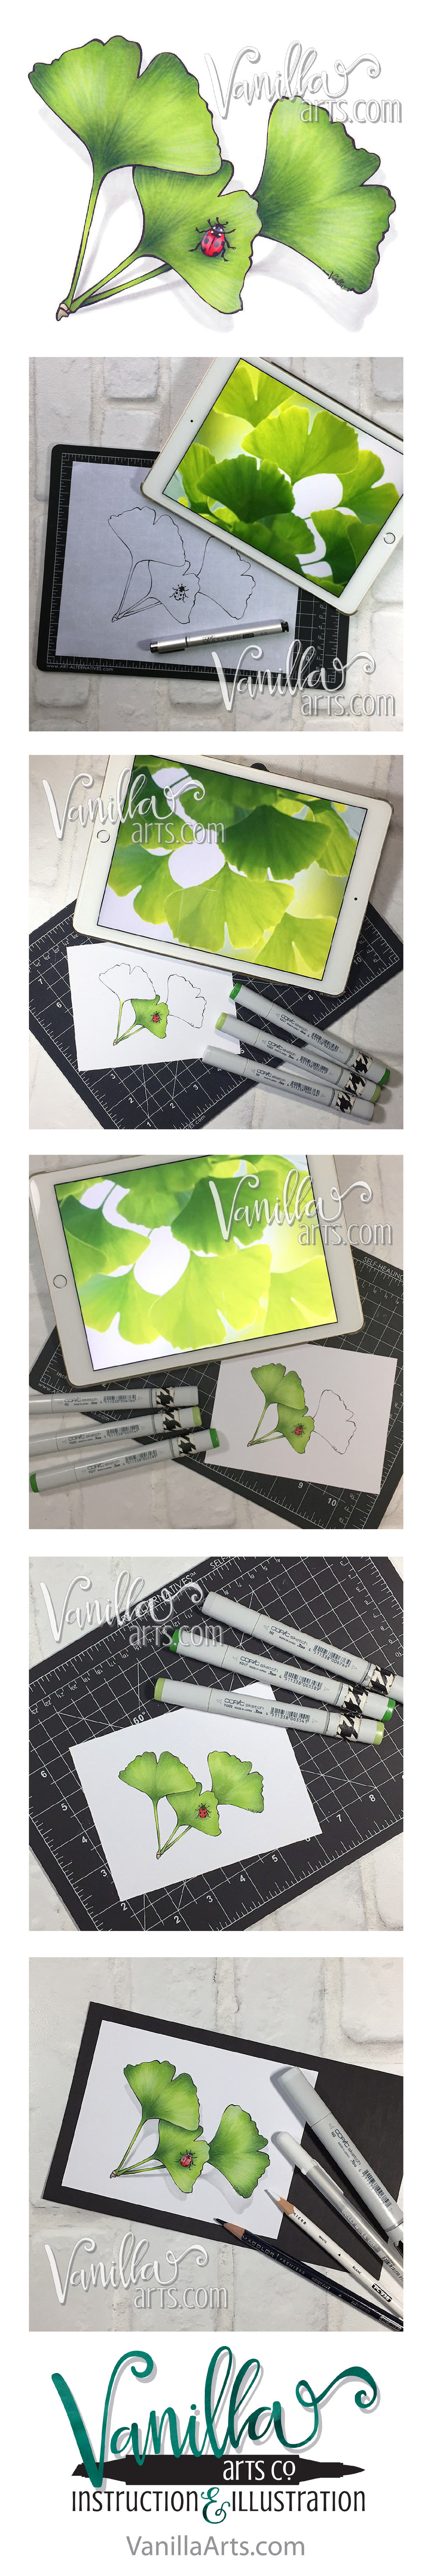 Marker Painting Foundations- online course which changes the way you approach Copic Markers. Week 2 smooth blending lesson. | VanillaArts.com